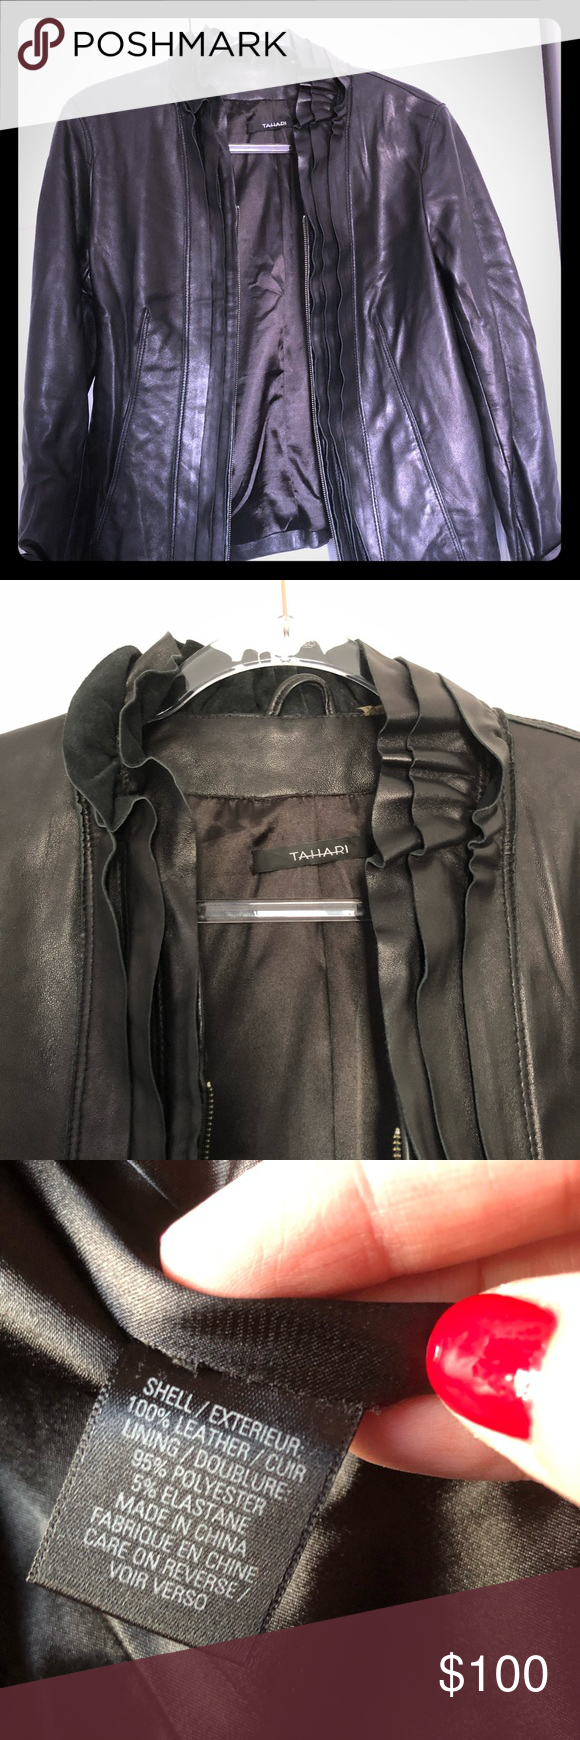 Tahari Beautiful Leather Jacket Absolutely Gorgeous Tahari Leather Jacket In Size S P Good Condition With Minimal Si Leather Jacket Beautiful Leather Jackets [ 1740 x 580 Pixel ]